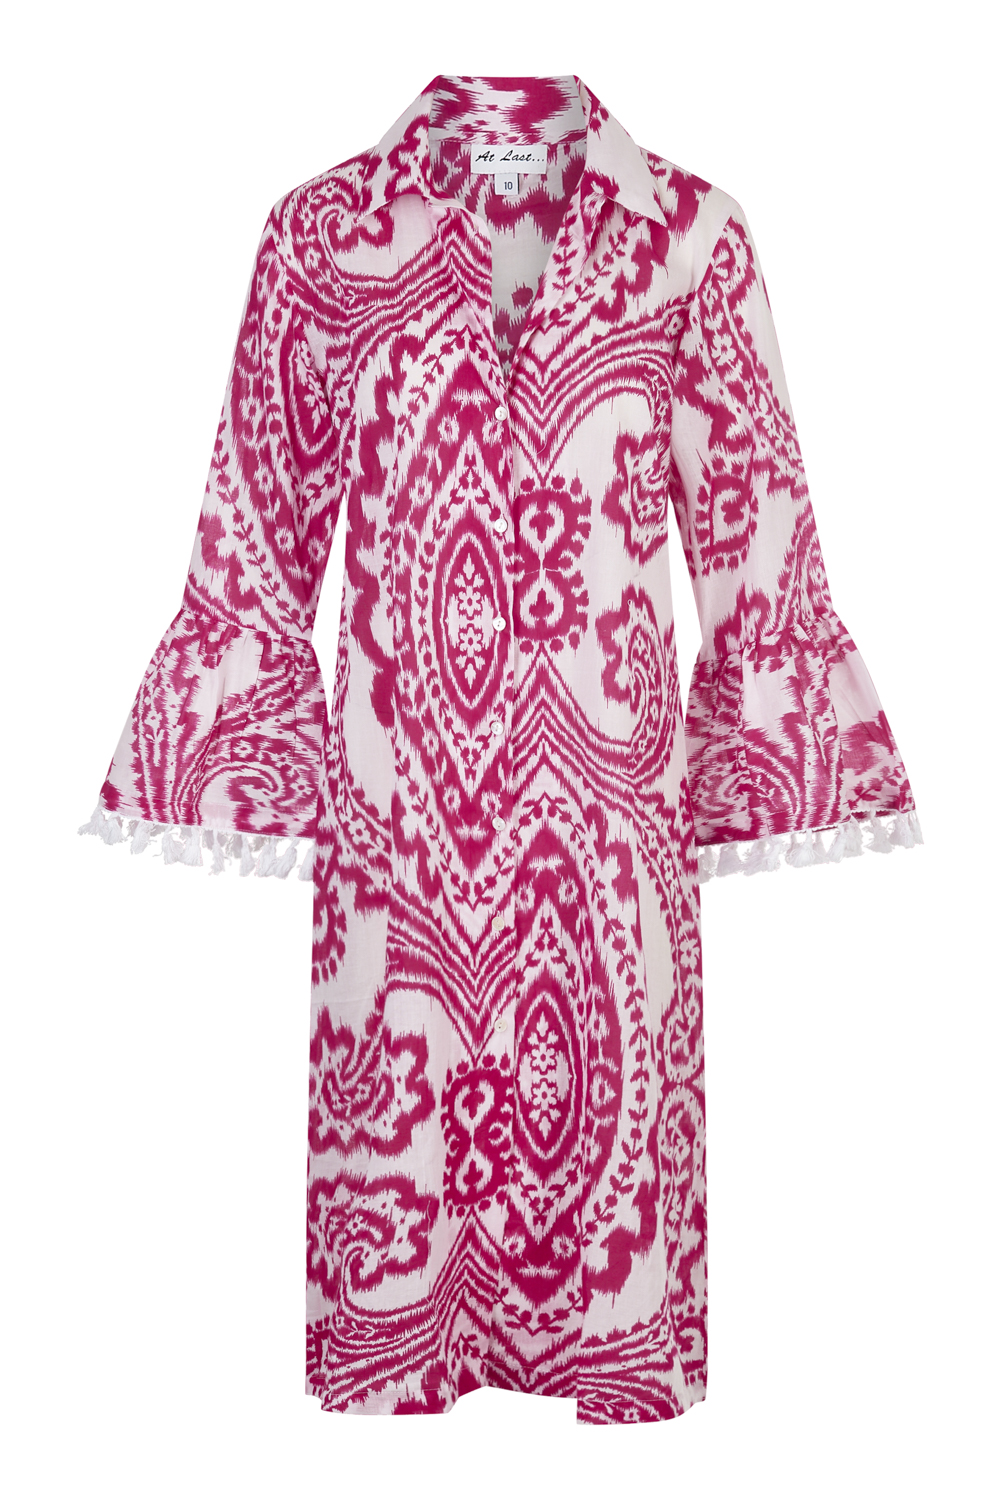 At Last Maxi Coat - Fustian Ikat